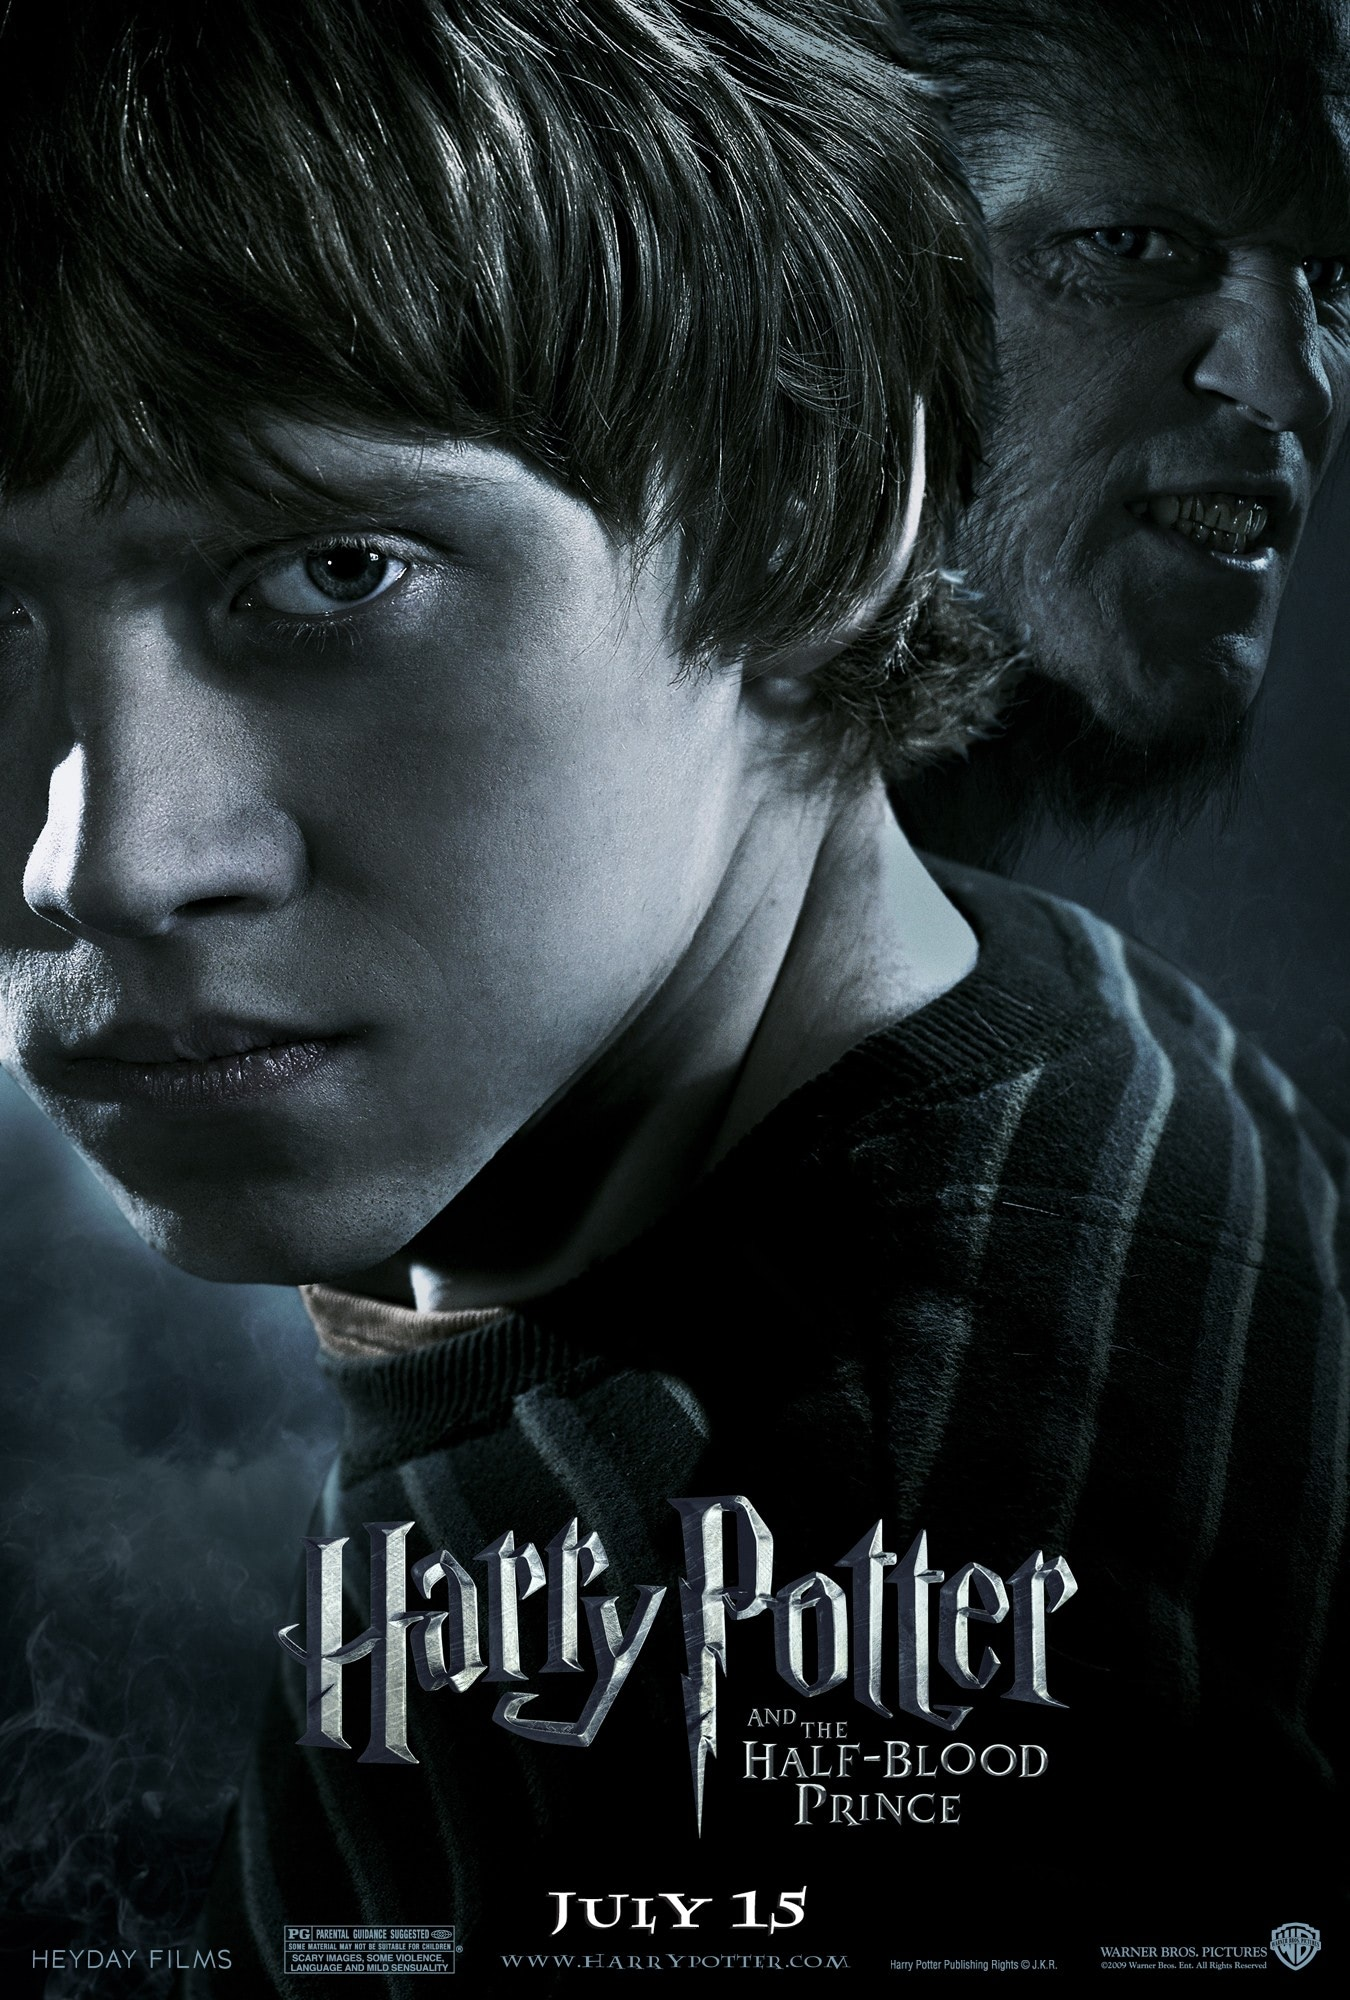 'Half-Blood Prince' Ron poster #2